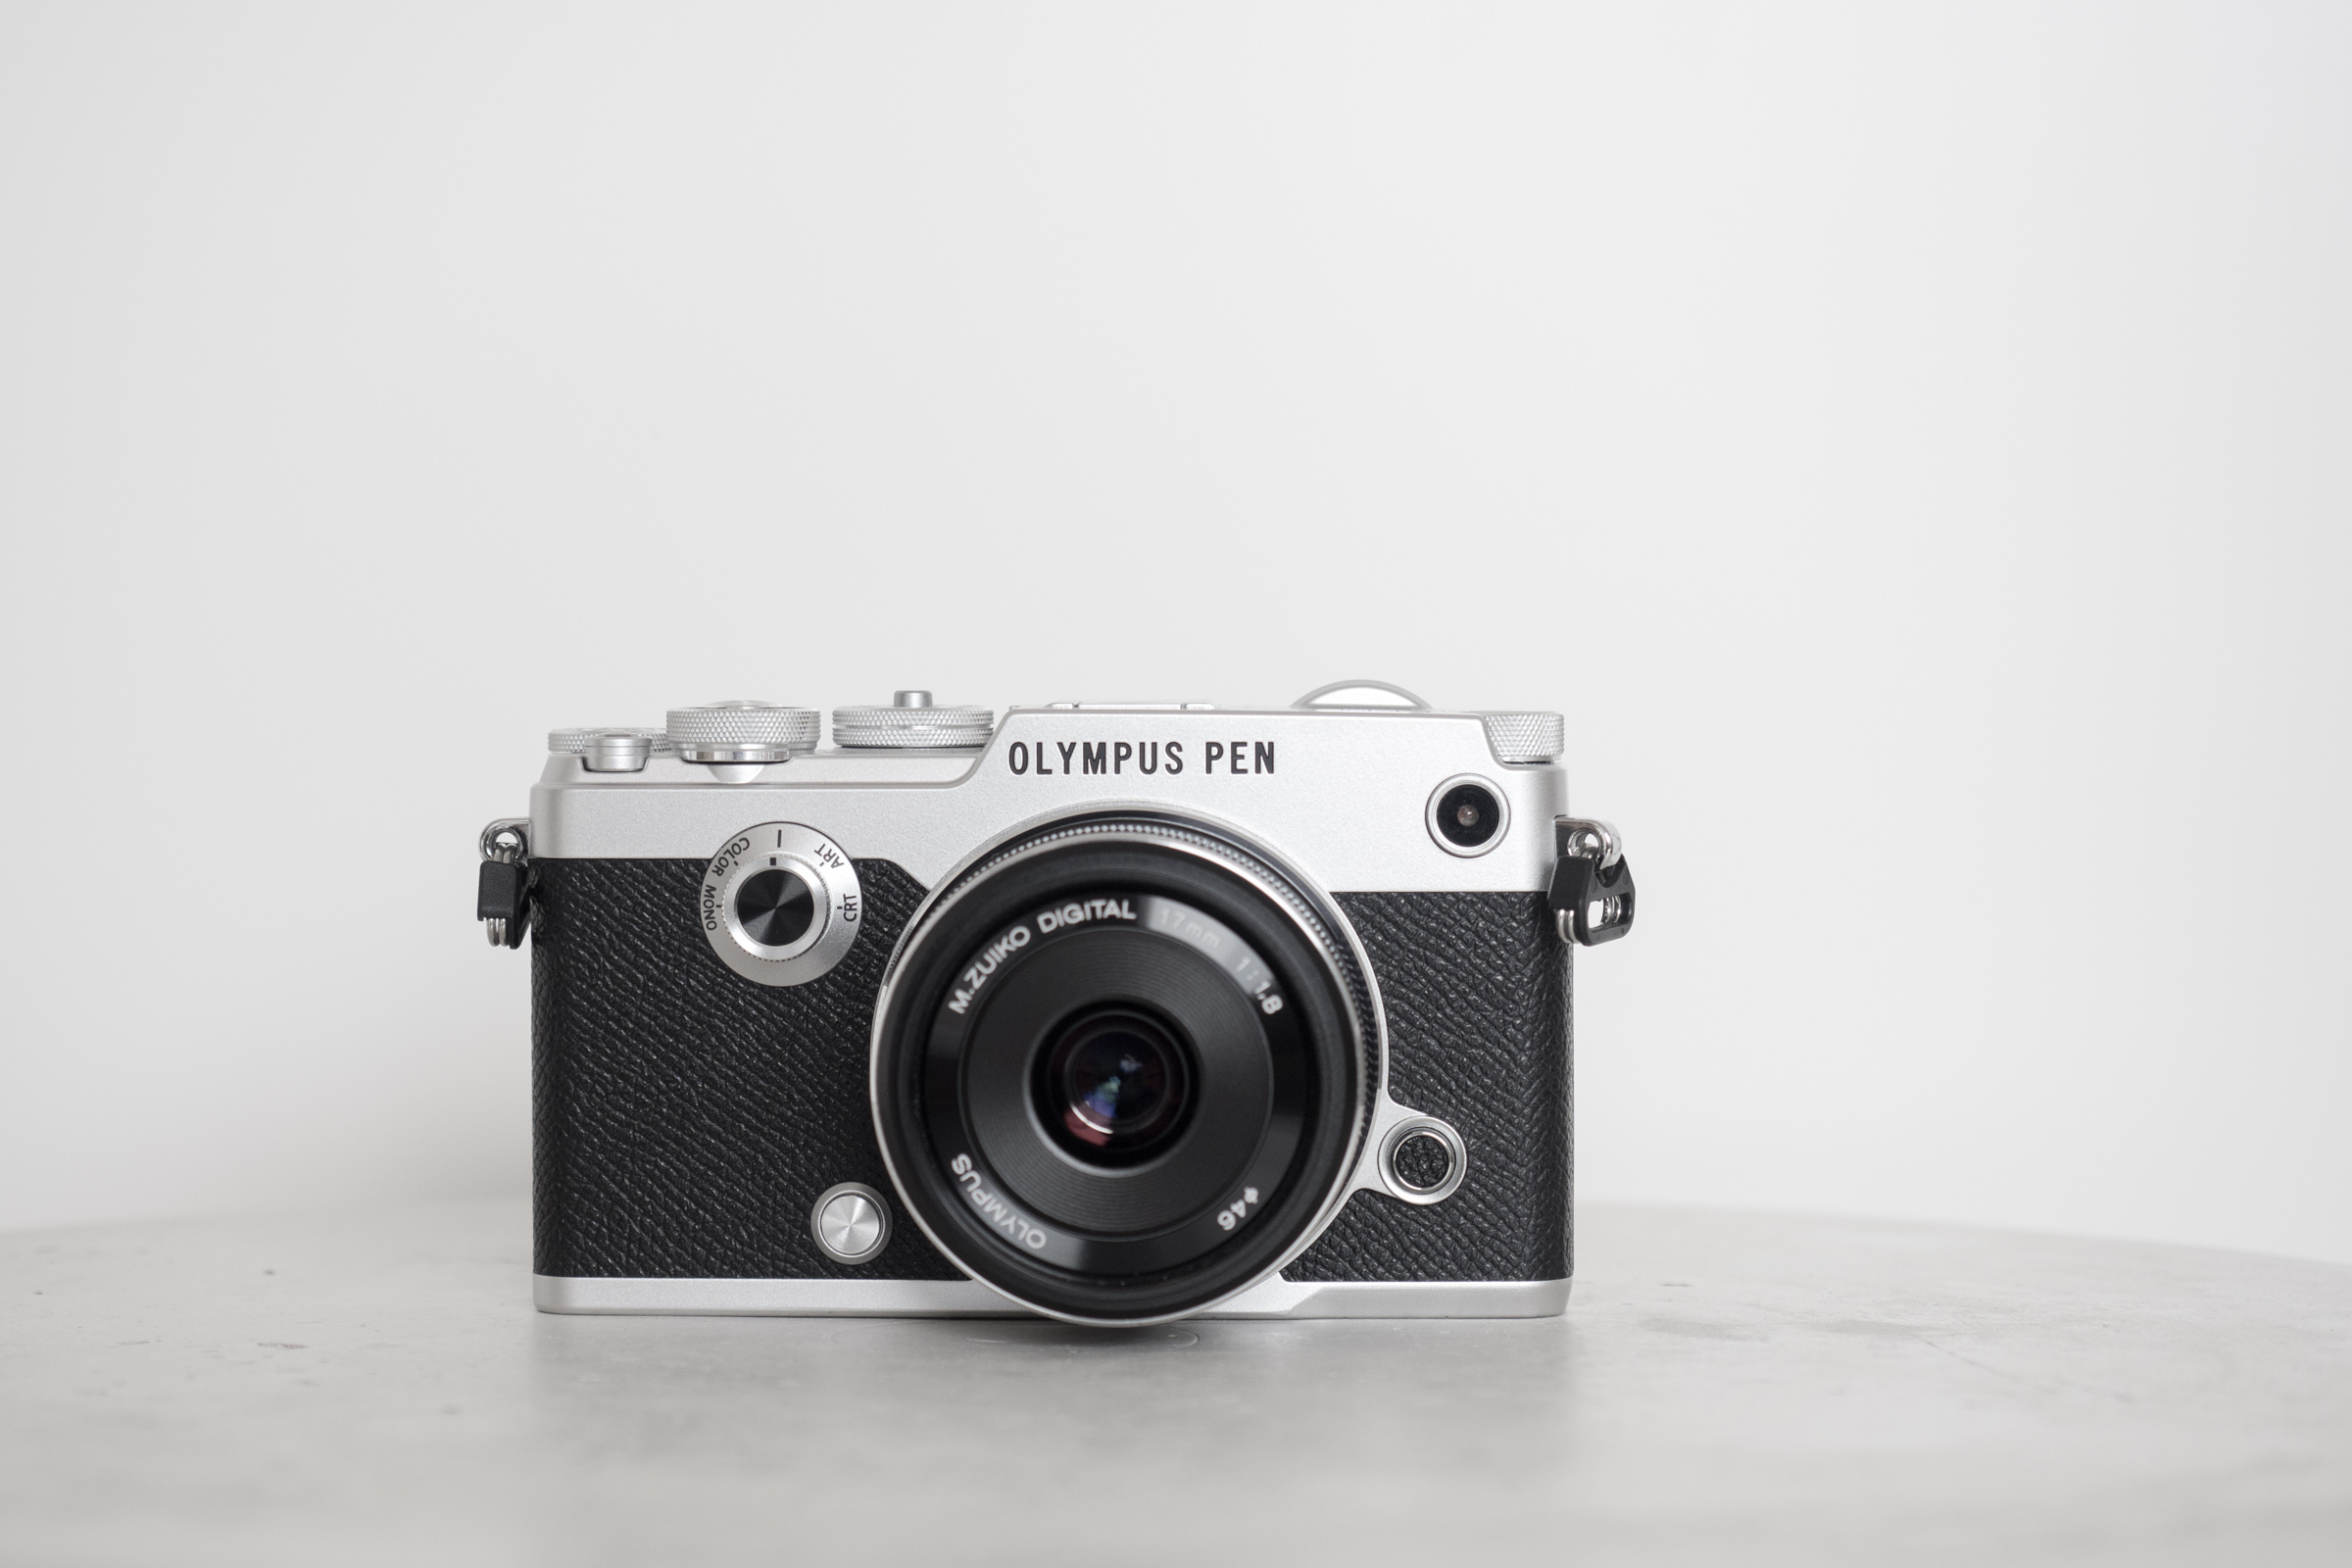 olympus pen f review a beautiful everyday camera hey gents. Black Bedroom Furniture Sets. Home Design Ideas